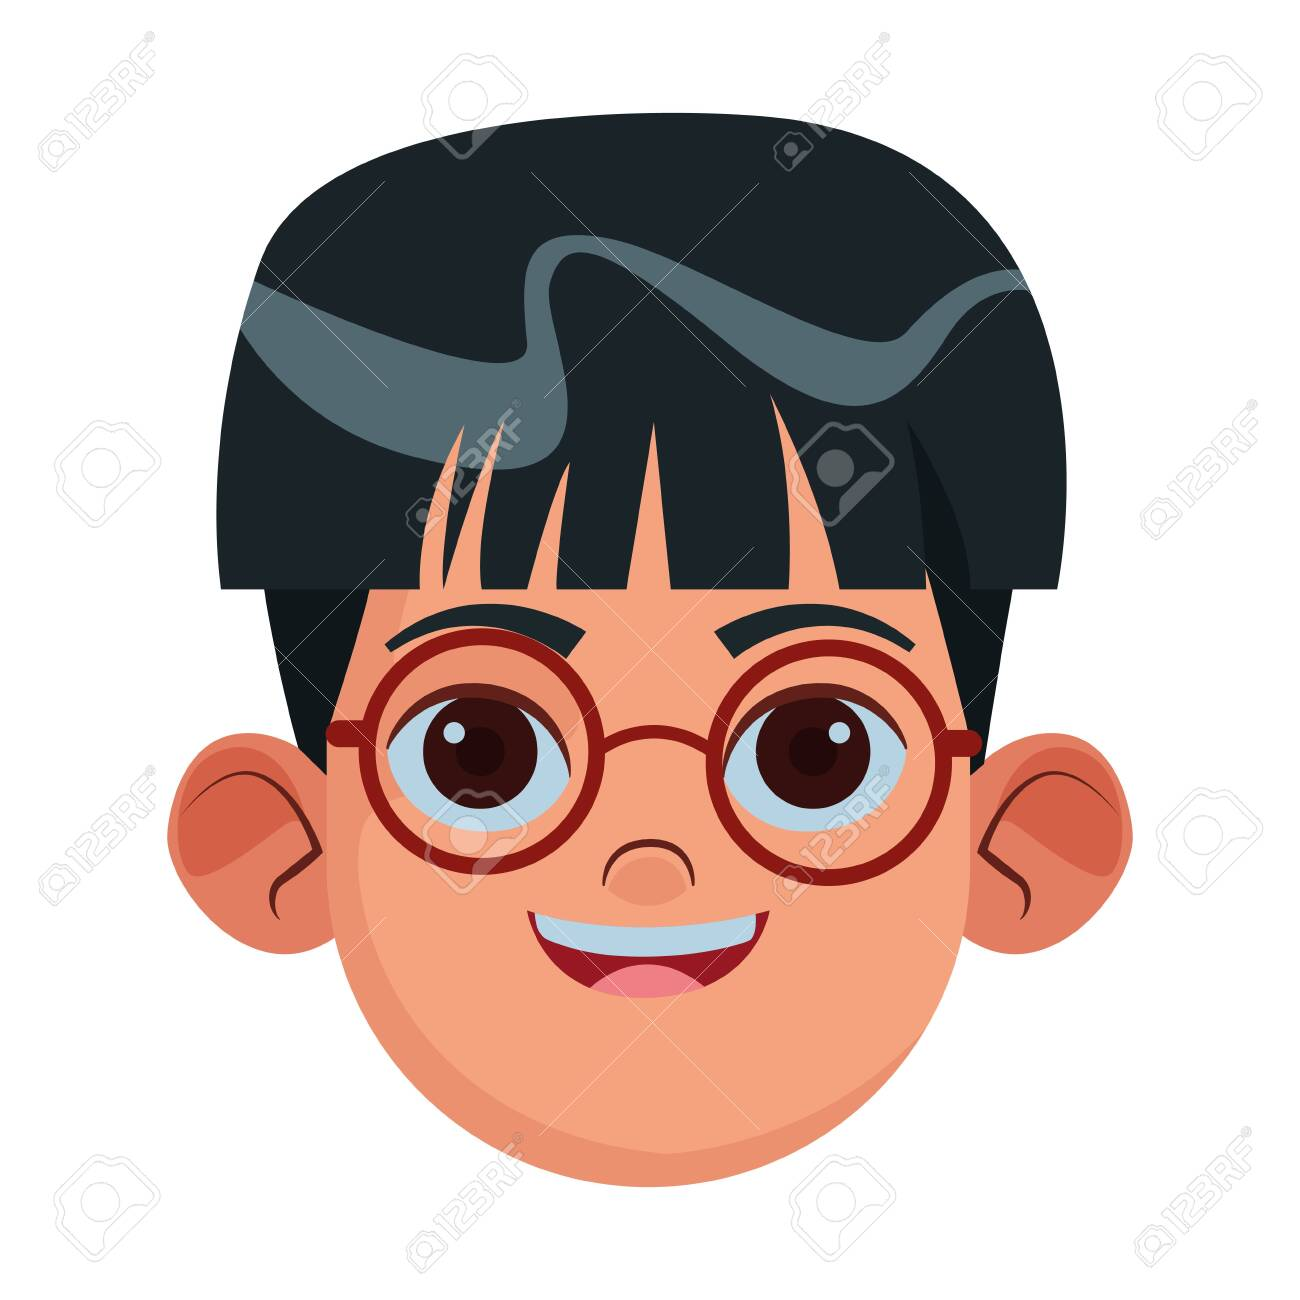 Little Kid Boy With Glasses Avatar Cartoon Character Profile